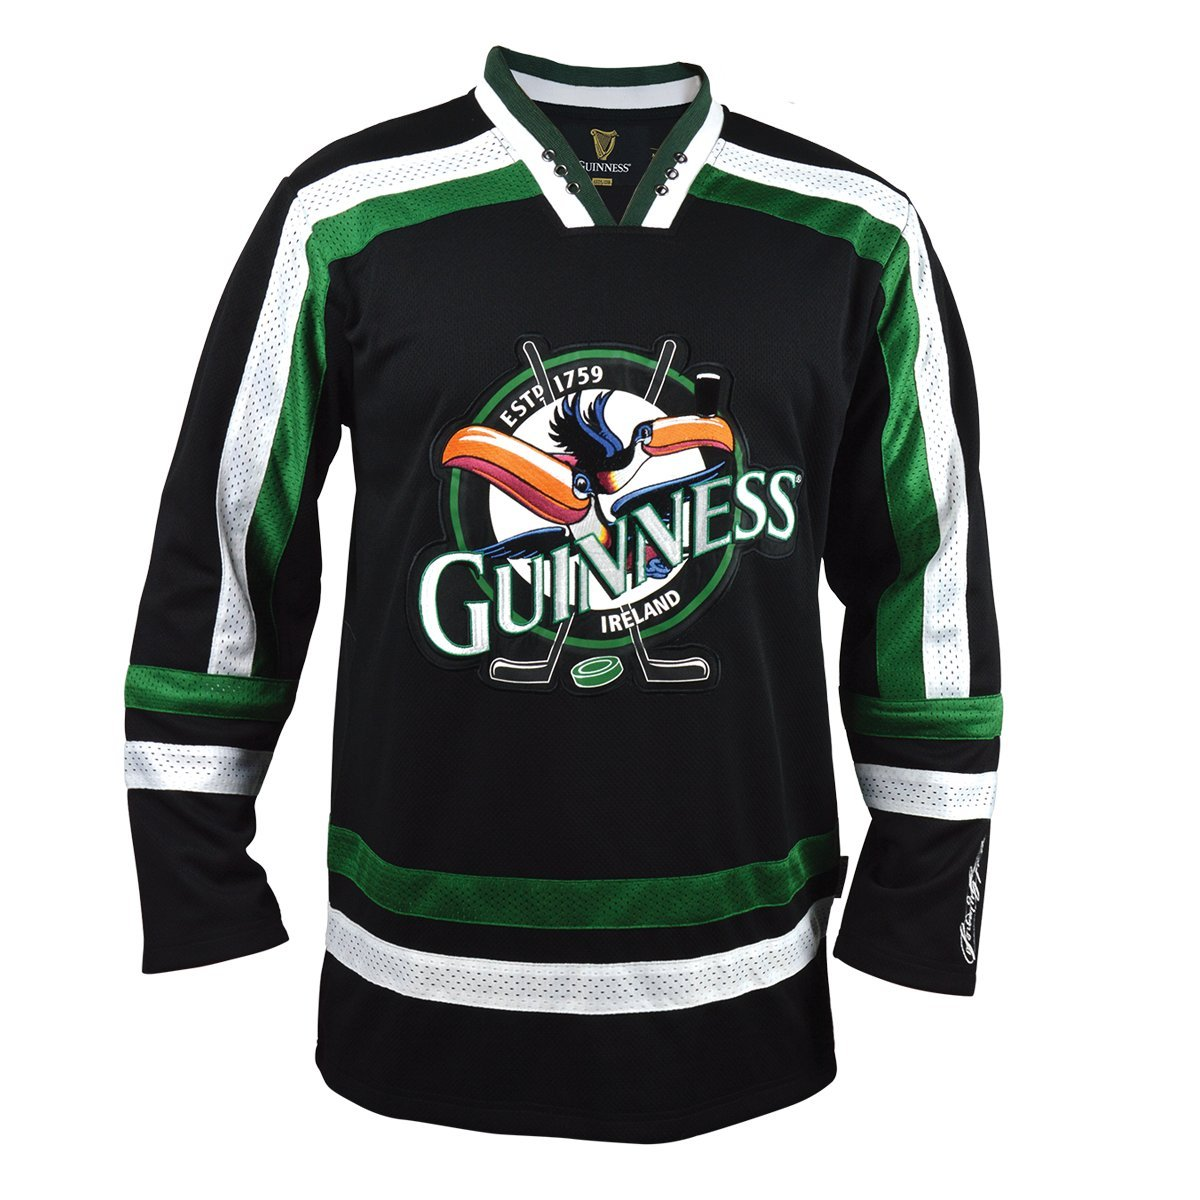 Guinness Toucan Black, Green White Hockey Jersey